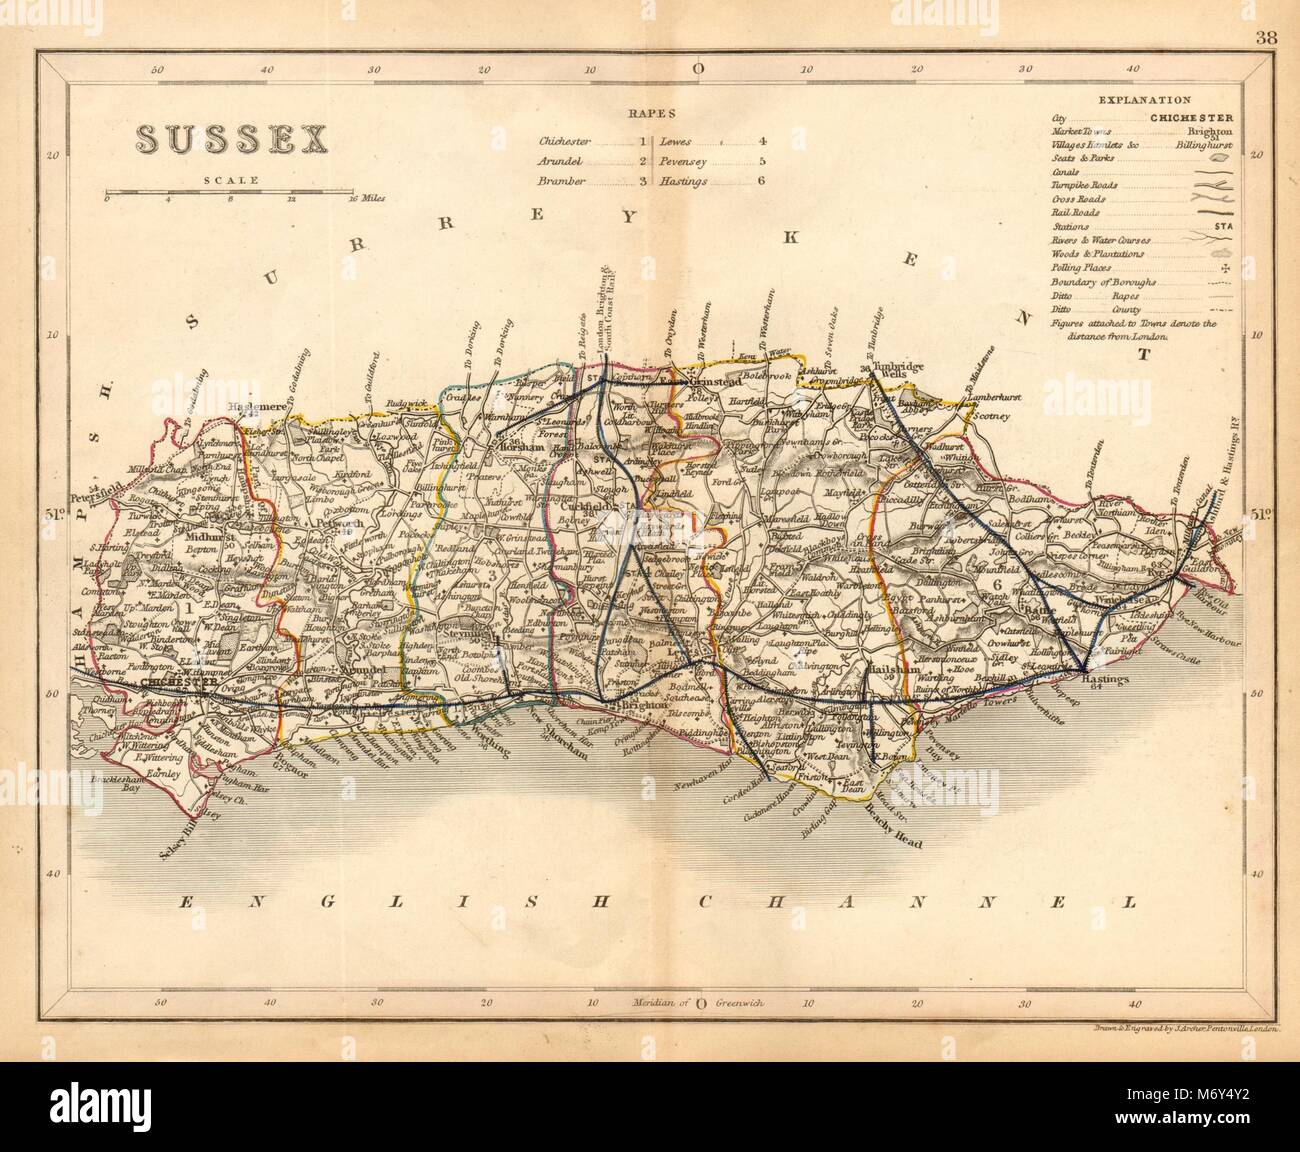 Sussex England Map Stock Photos Sussex England Map Stock Images